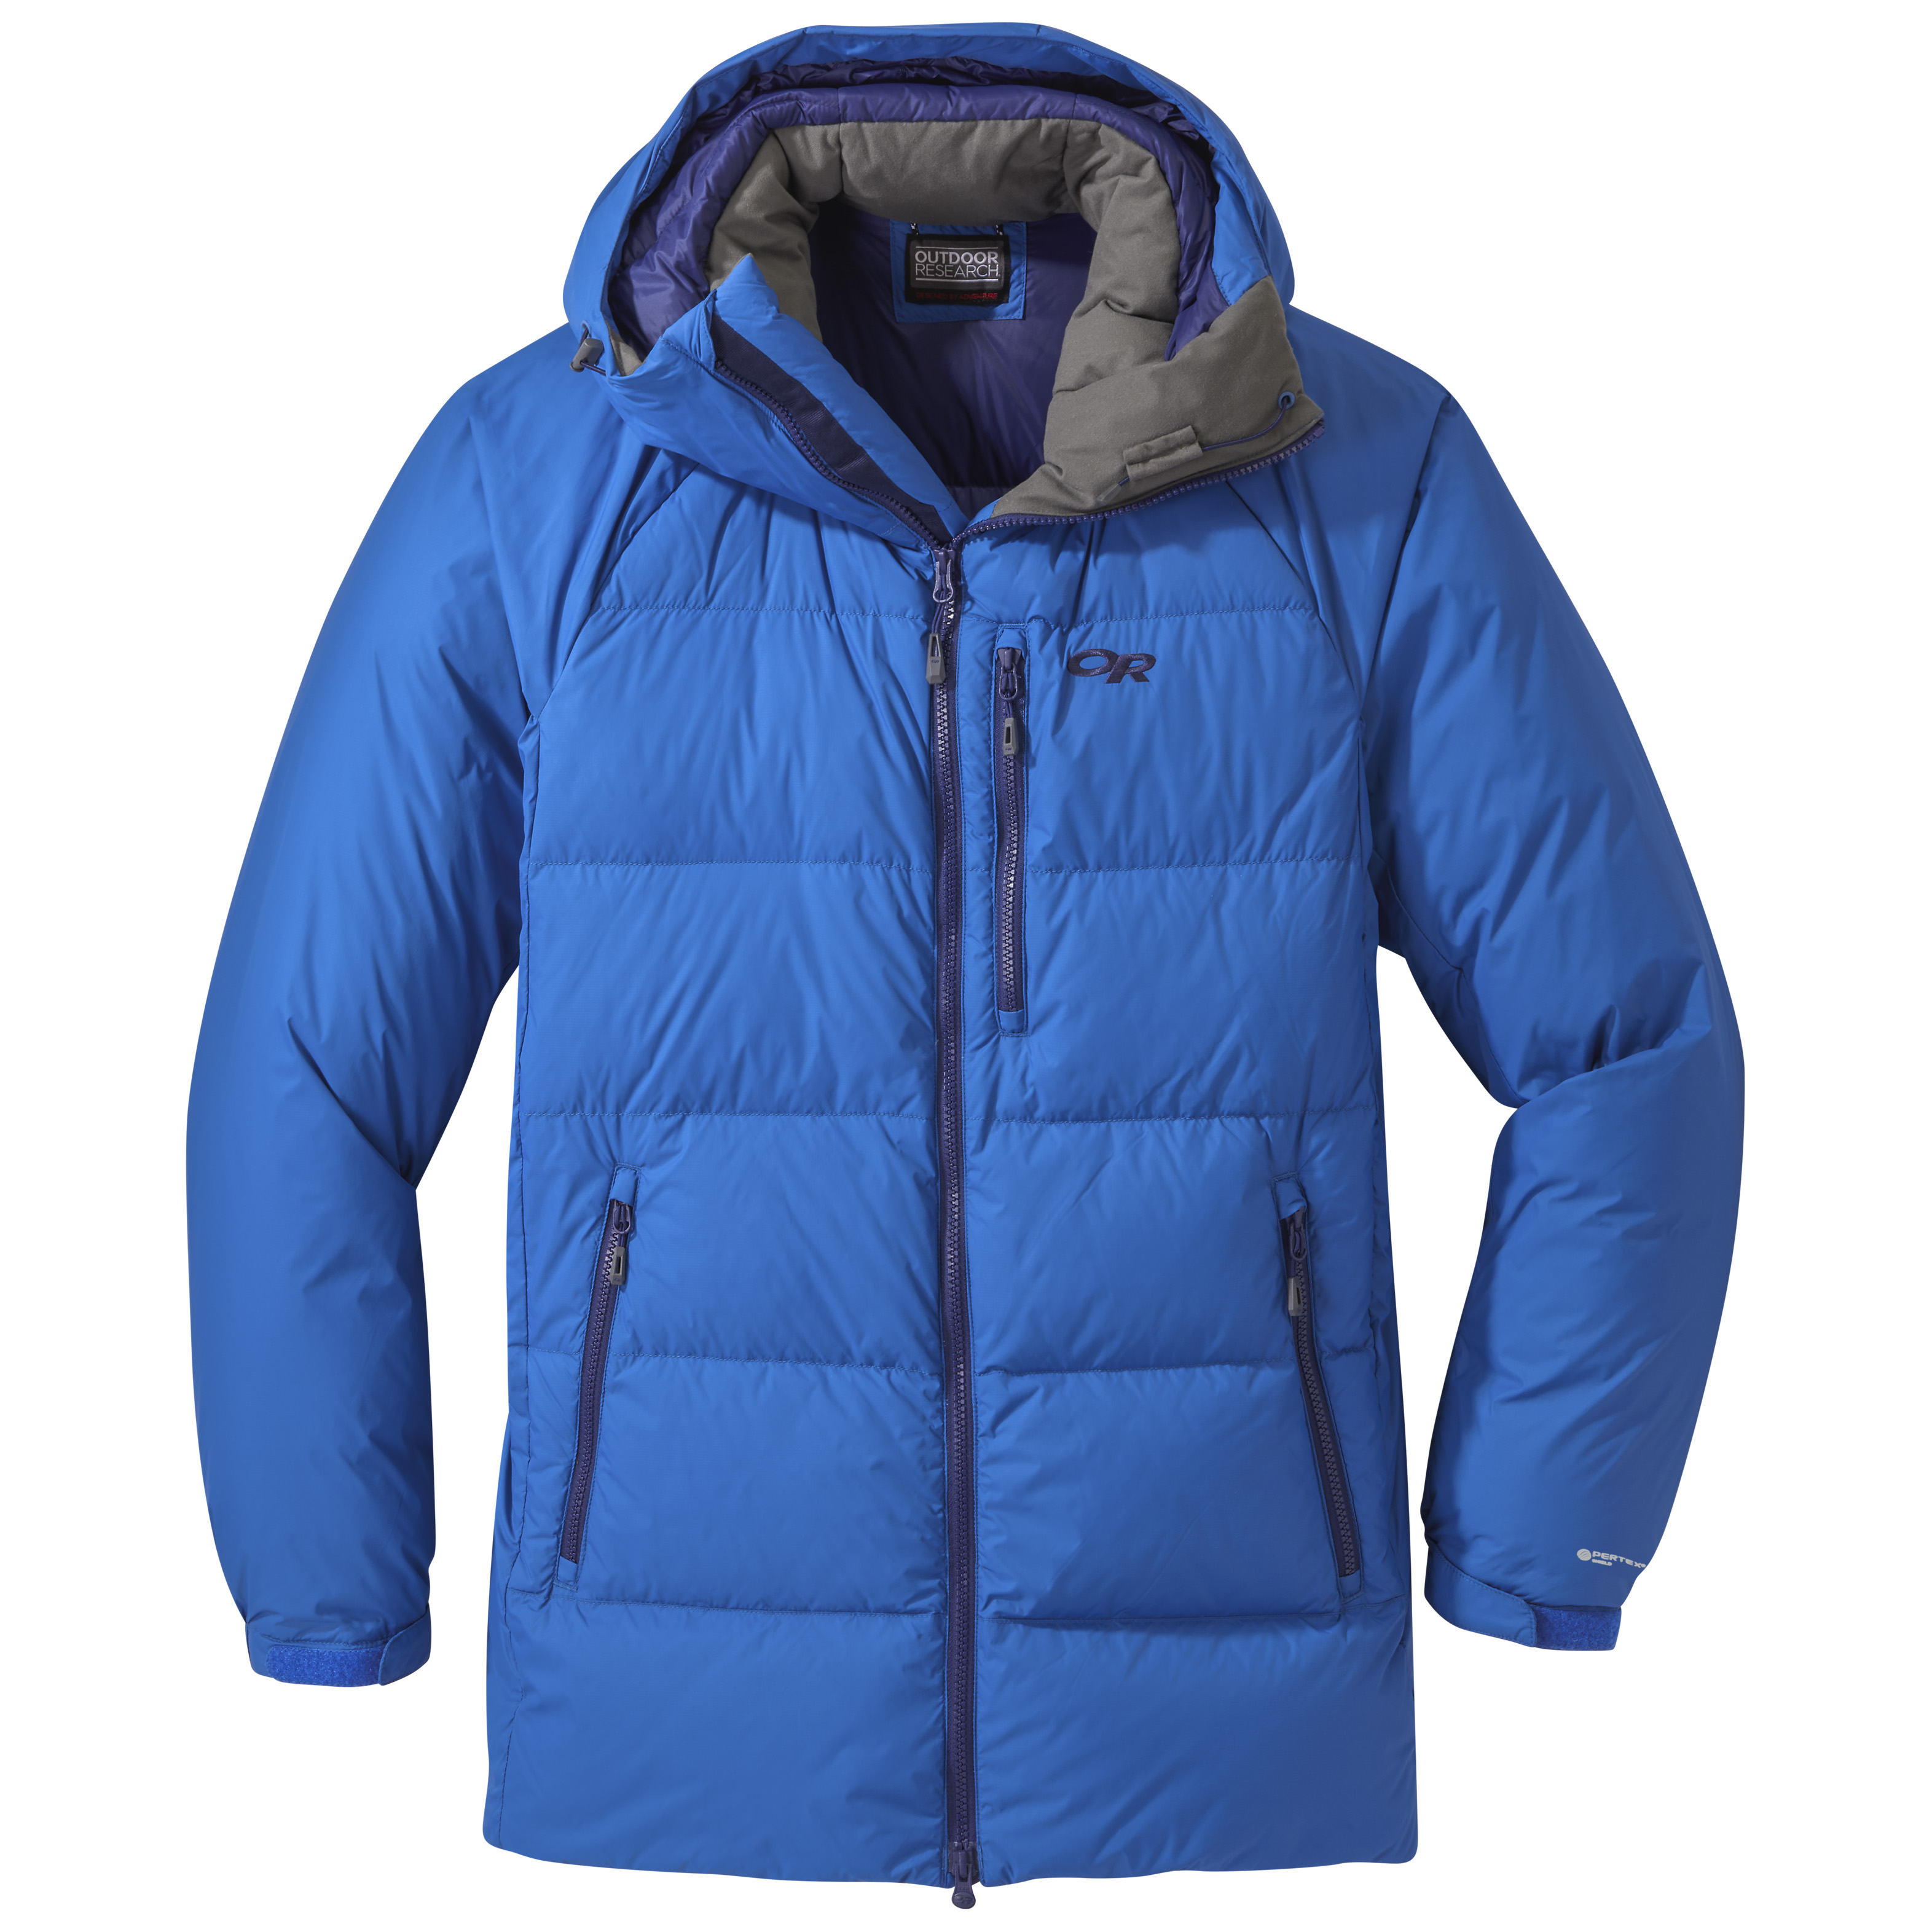 The new Outdoor Research Super Alpine Down parka is compact for travel while providing a warm winter layer when you need it.